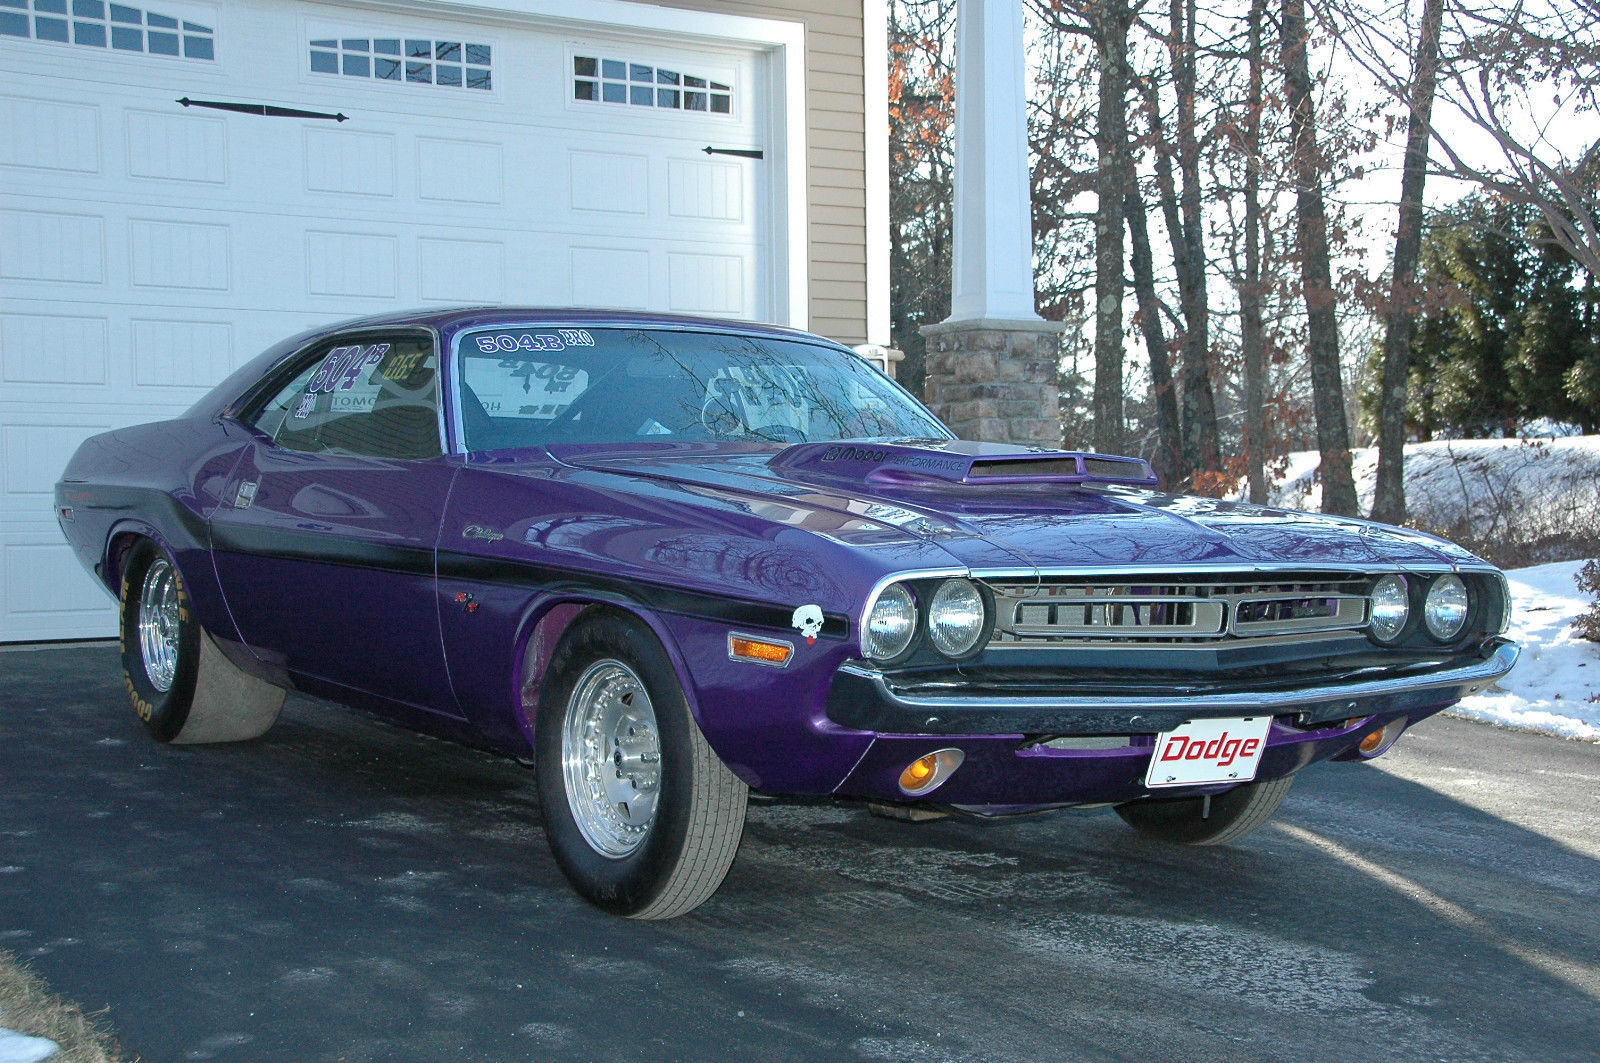 1970 Dodge Challenger R T Drag Street Show Muscle Classic Rare Hellcat Copo Srt For Sale In Manchester New Hampshire United States For Sale Photos Technical Specifications Description